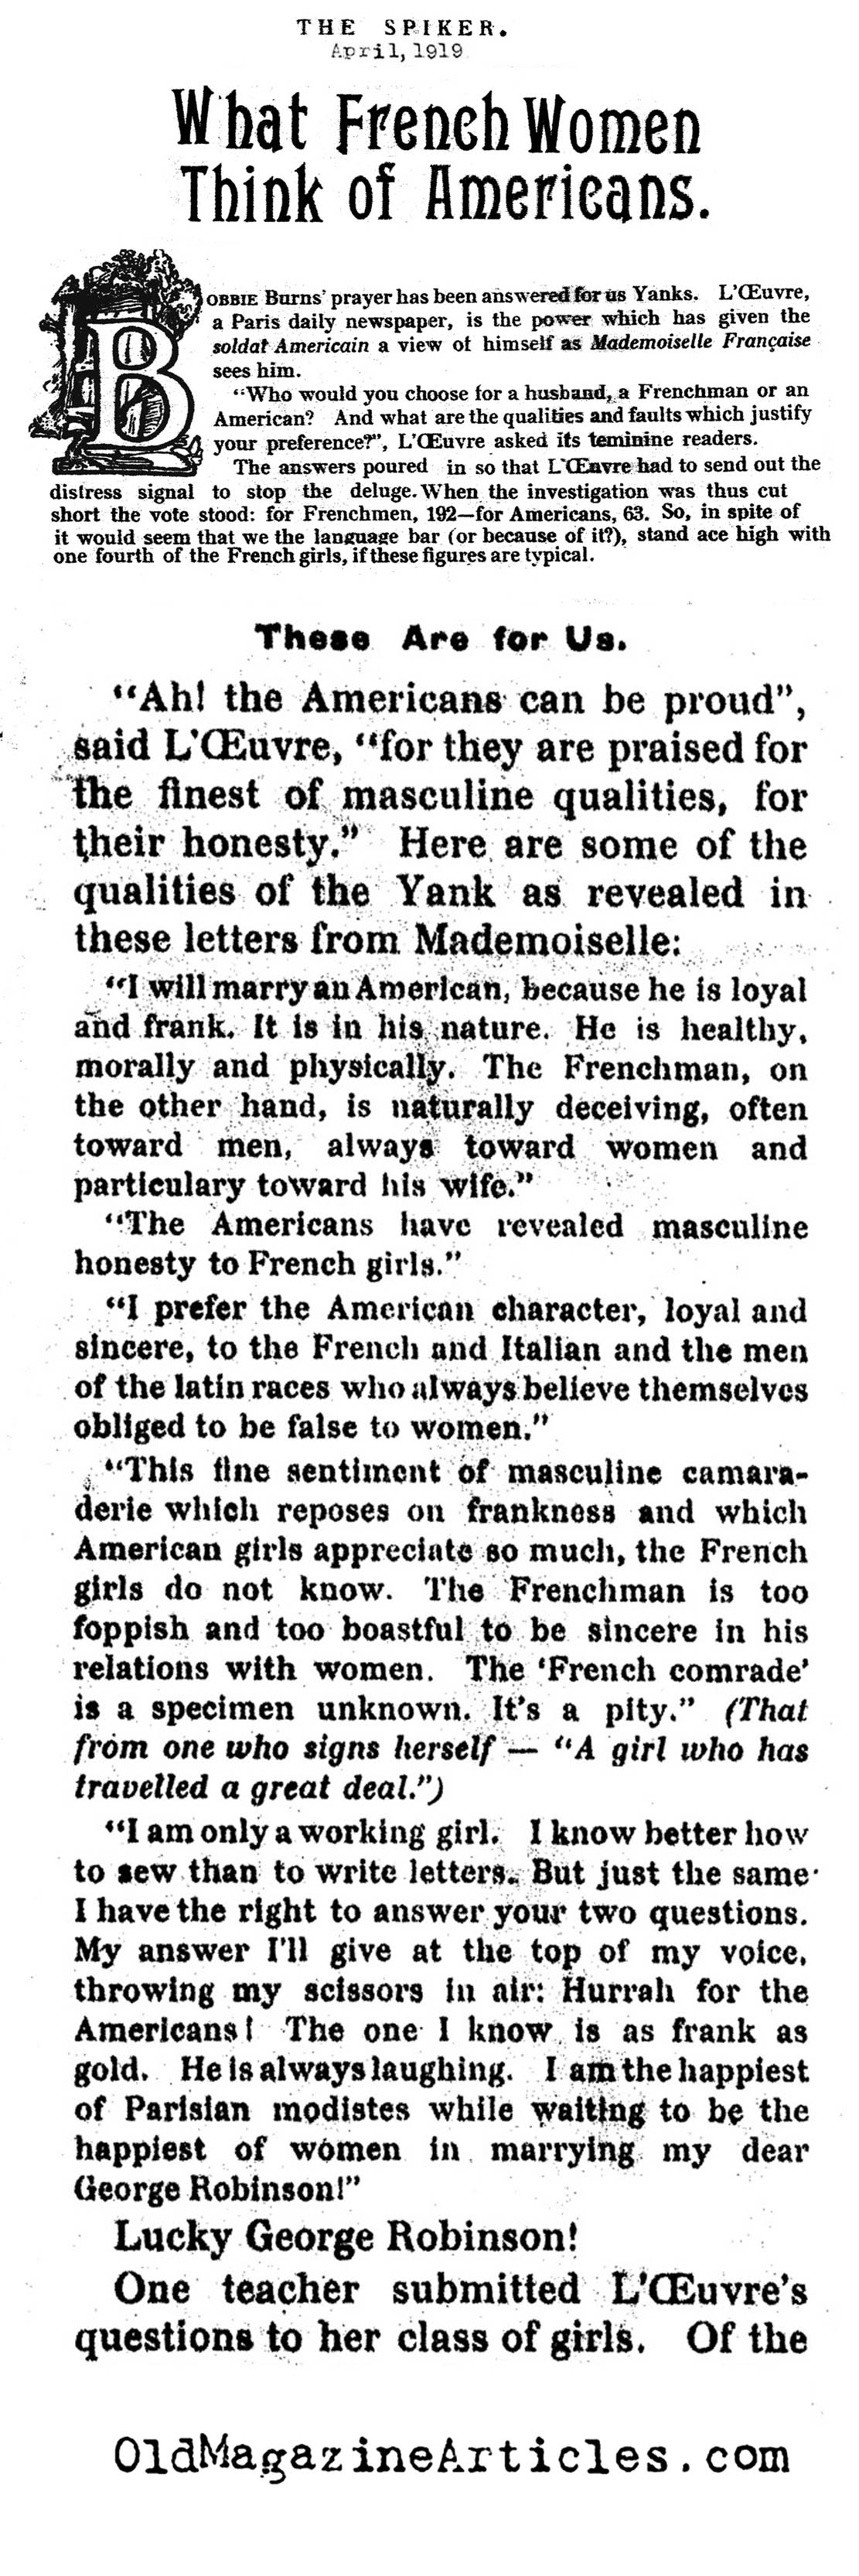 French Women and American Soldiers   (The Spiker, 1919)